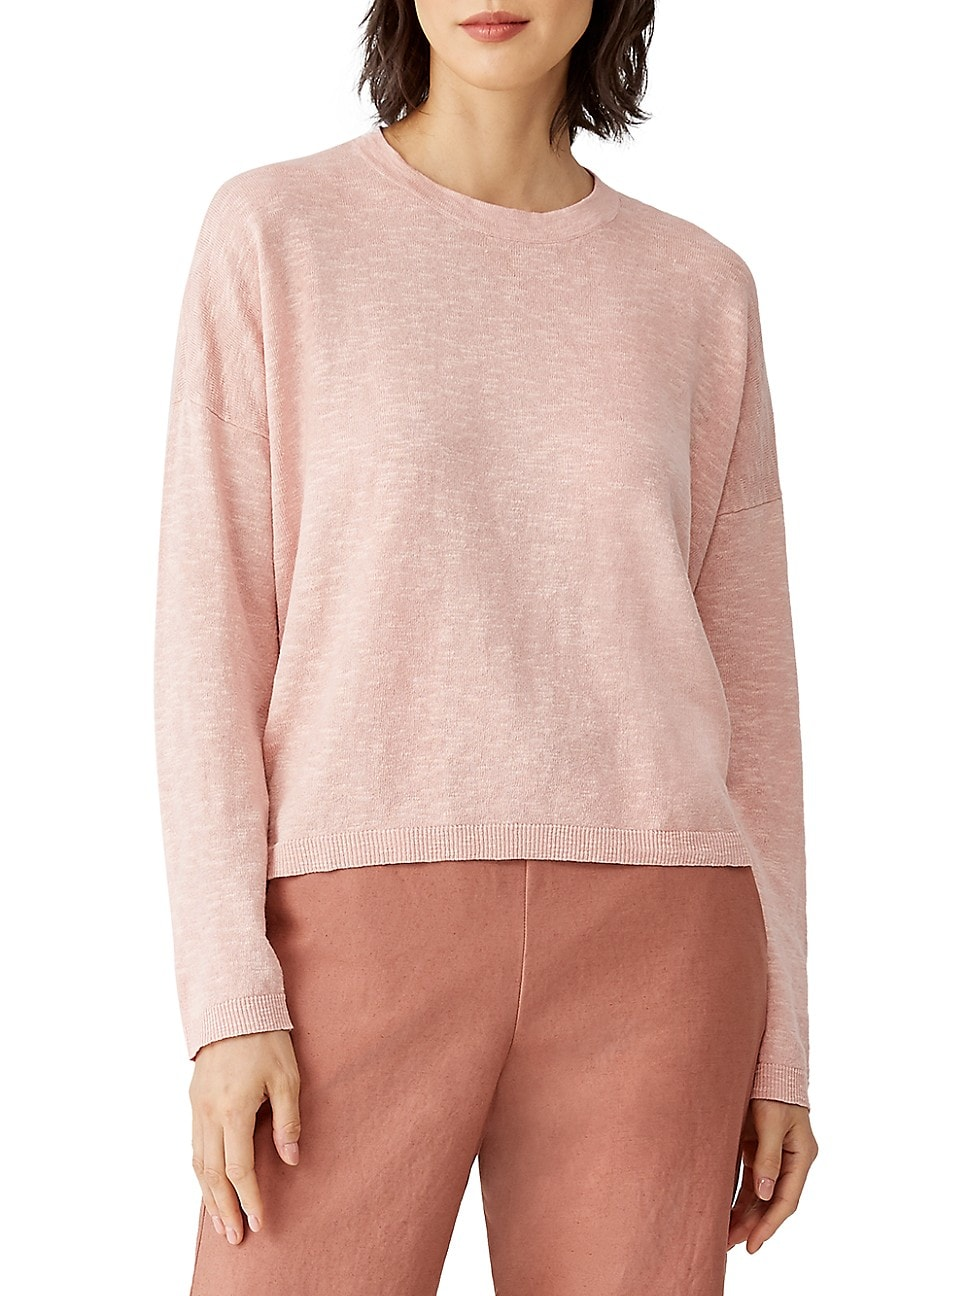 Eileen Fisher WOMEN'S ORGANIC LINEN-BLEND CREWNECK TOP